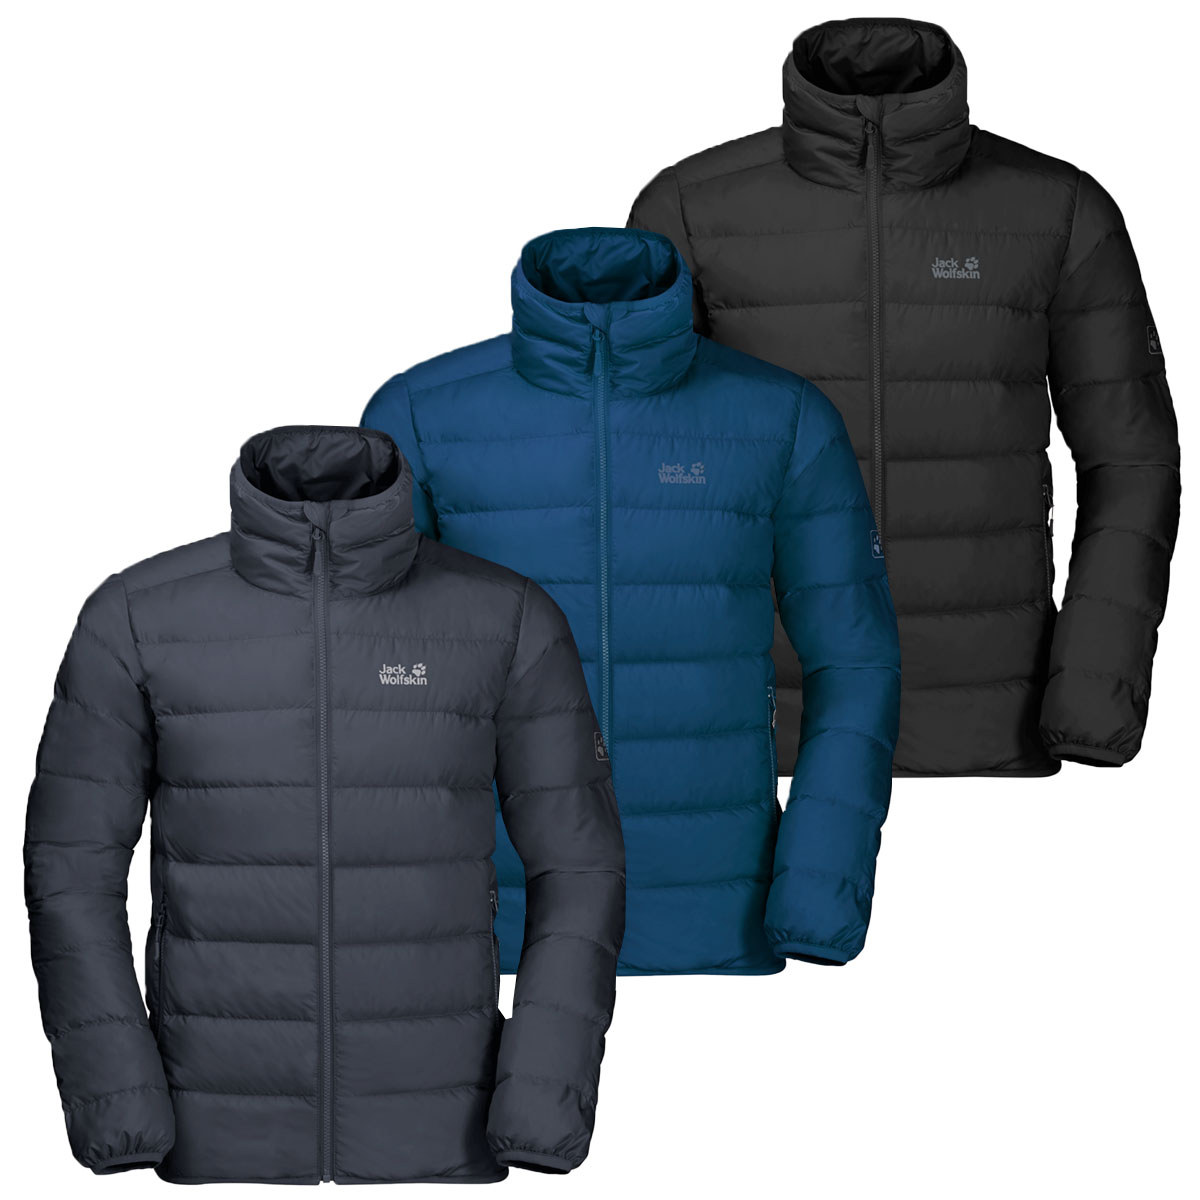 Details about Jack Wolfskin Mens Helium High Windproof Water Resistant Down Jacket Coat